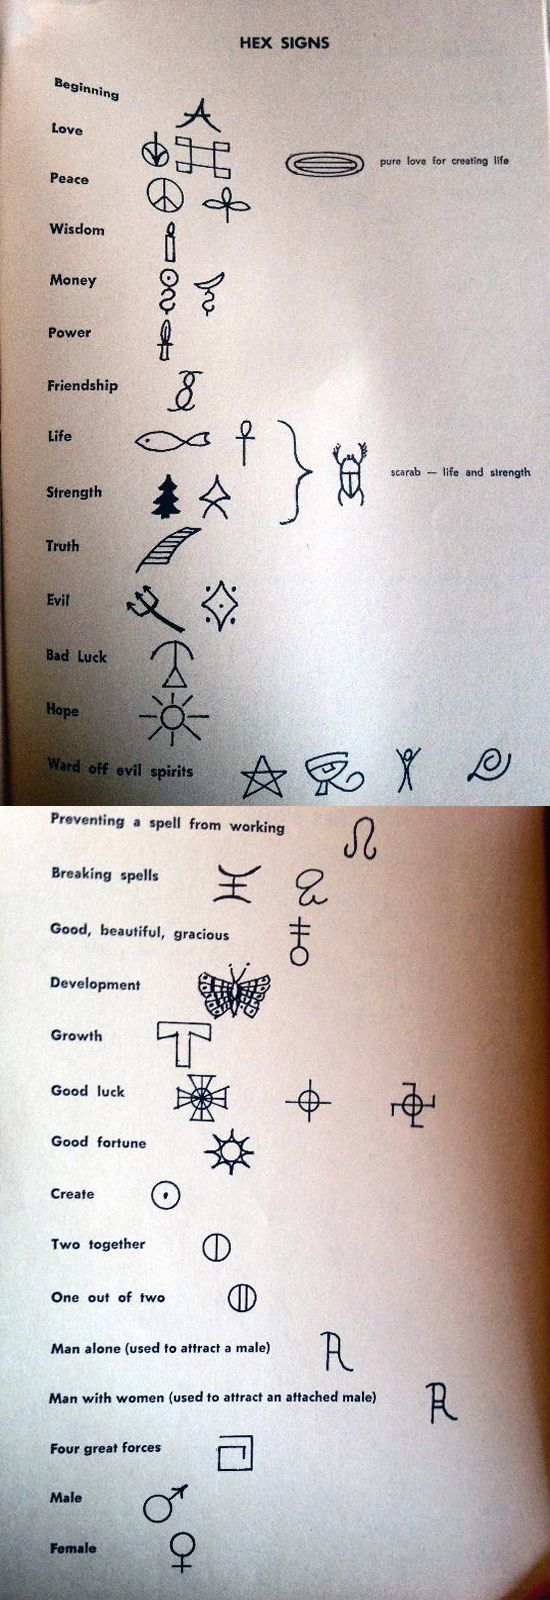 Witchcraft Hex signs are simple symbols that you can use to help in working magick. The symbols are always easy to draw. You can carve these symbols onto candles when doing rituals or spells. You can draw them in sand, on paper, stitch them onto charm bags, and any other way you can think of to incorporate them into your magickal workings. Along the lines in history I think the term hex has gotten a bad name.